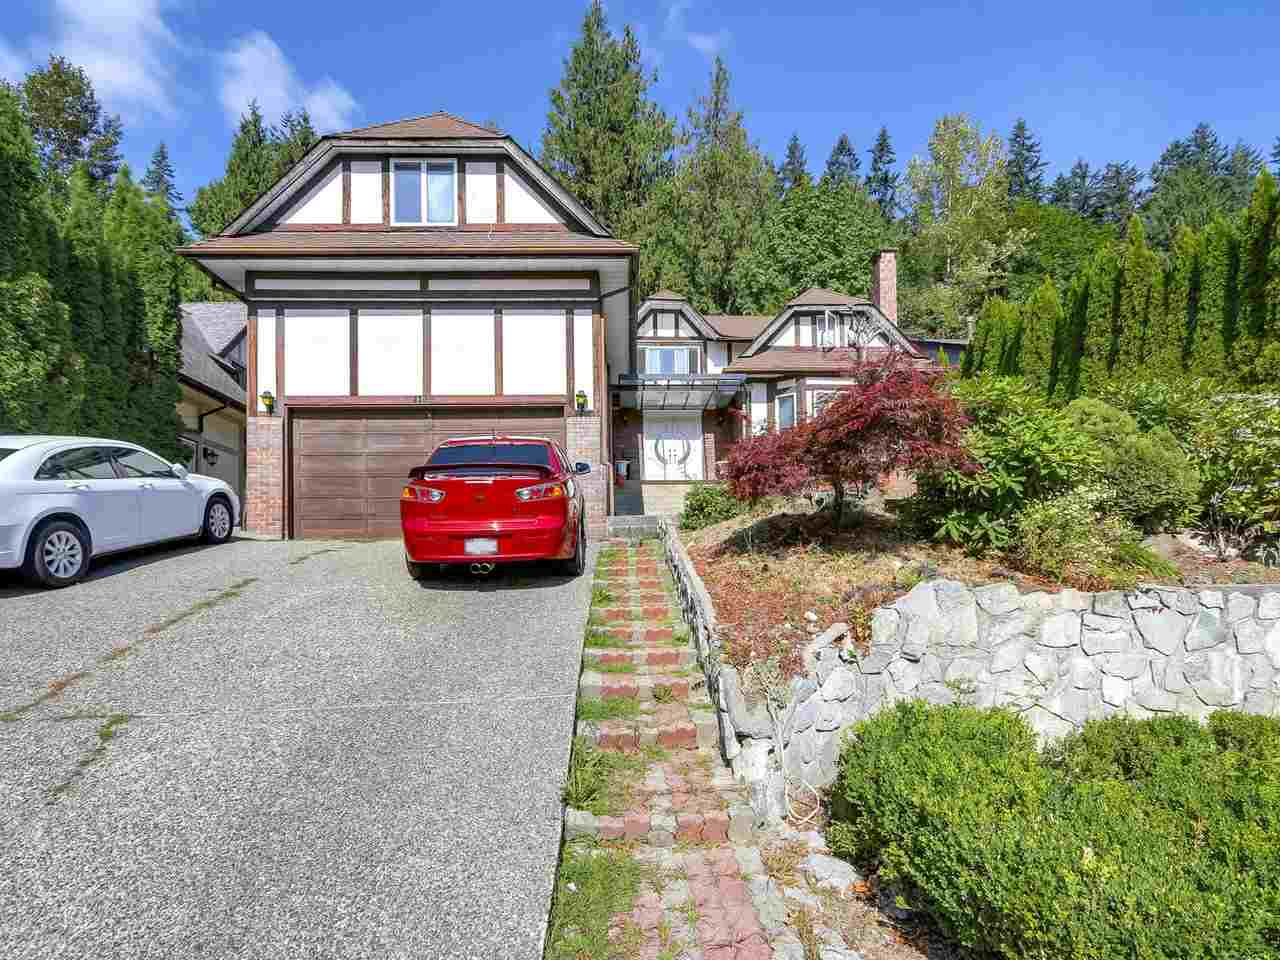 Photo 1: 488 ALOUETTE Drive in Coquitlam: Coquitlam East House for sale : MLS® # R2205071